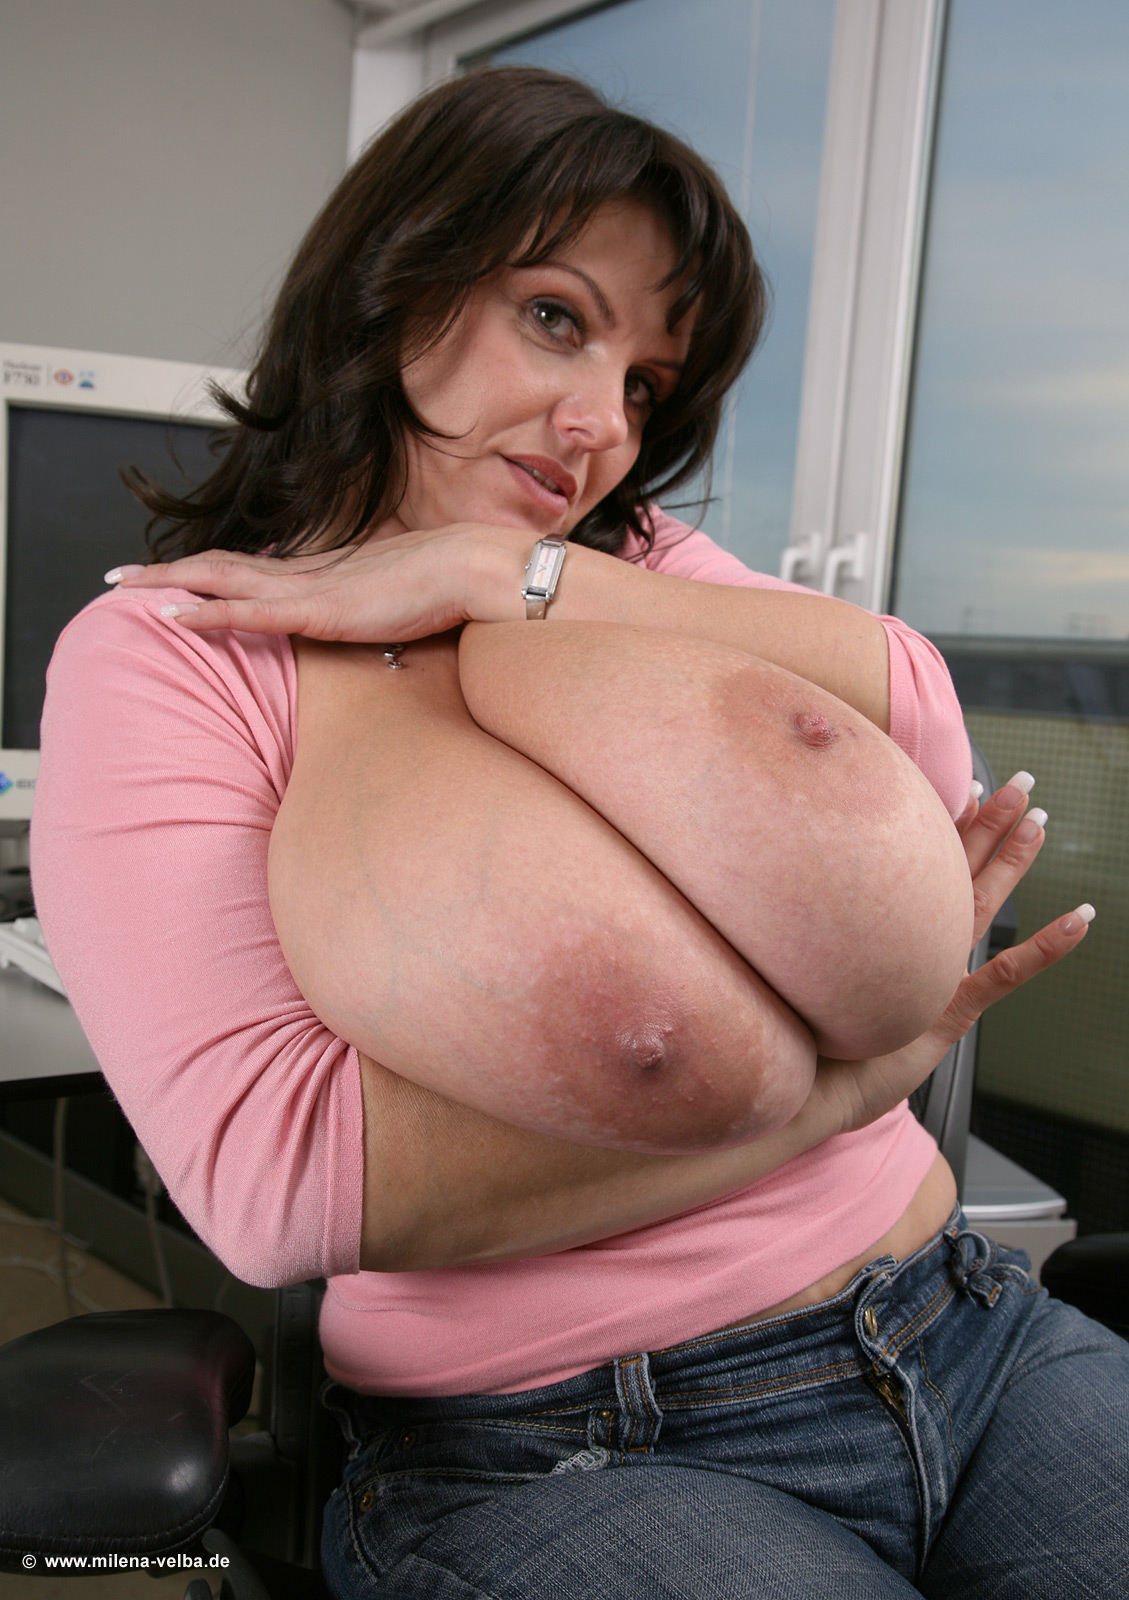 Chubby porn star pictures